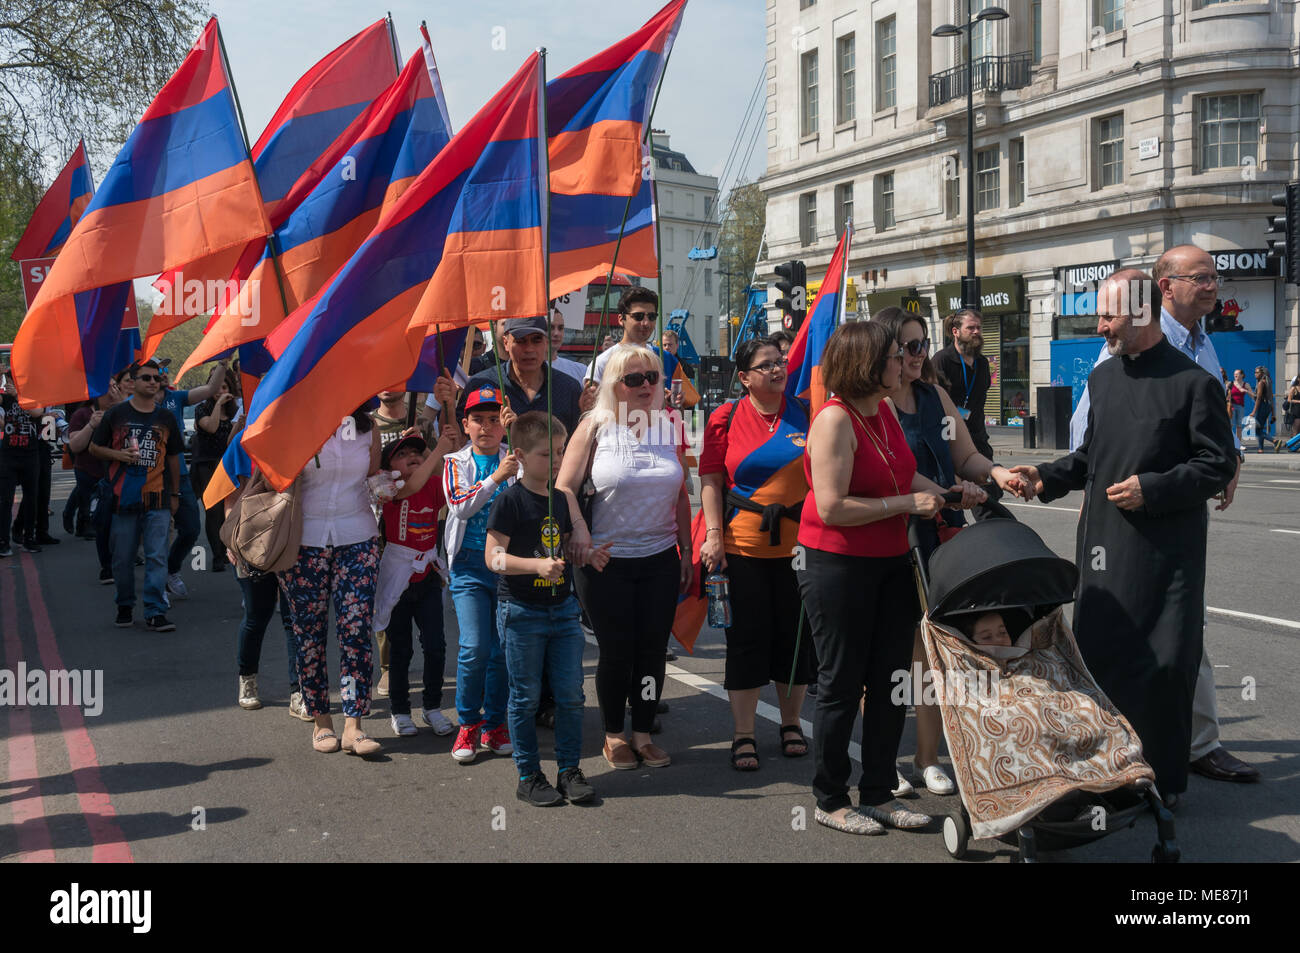 London, UK. 21st April 2018. Armenians march through London from Marble Arch to the Cenotaph at the start of a series of events commemorating the 103rd anniversary of the beginning of the Armenian Genocide. They demand the UK follow the lead of many other countries and recognise the Armenian genocide. Between 1915 and 1923 Turkey killed 1.5m Armenians, around 70% of the Armenian population, but Turkey still refuses to accept these mass killings as genocide. Credit: Peter Marshall/Alamy Live News - Stock Image